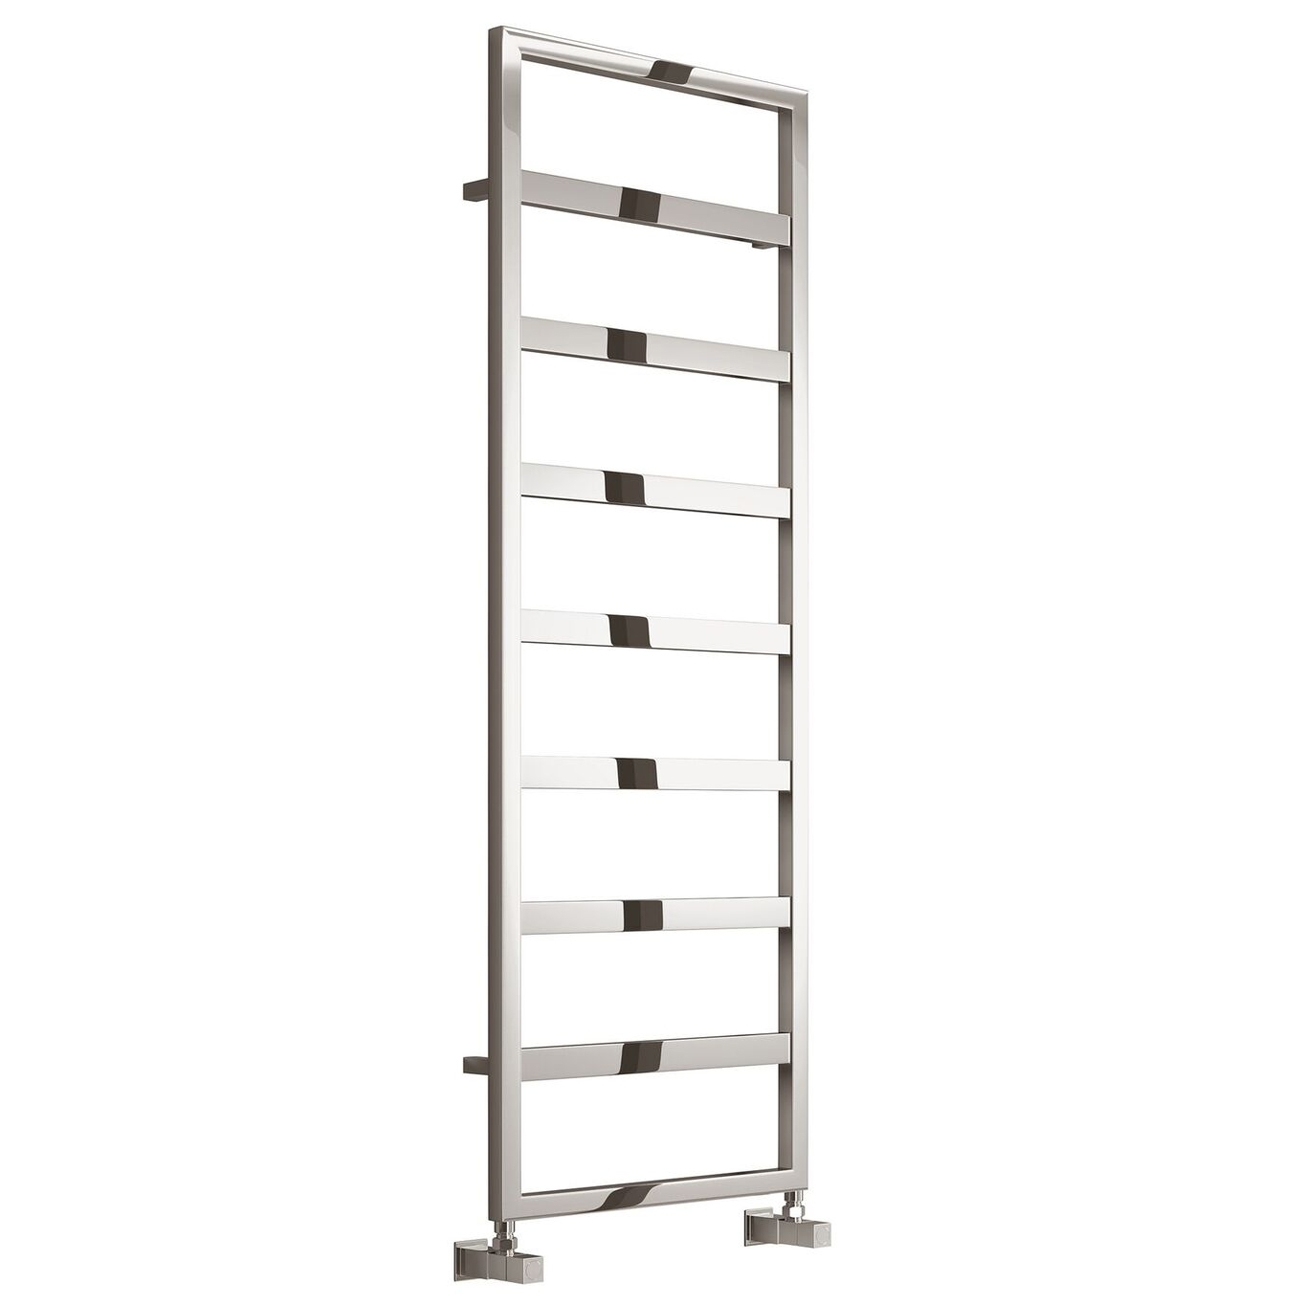 Reina Rezzo Designer Heated Towel Rail 1100mm H x 550mm W Chrome